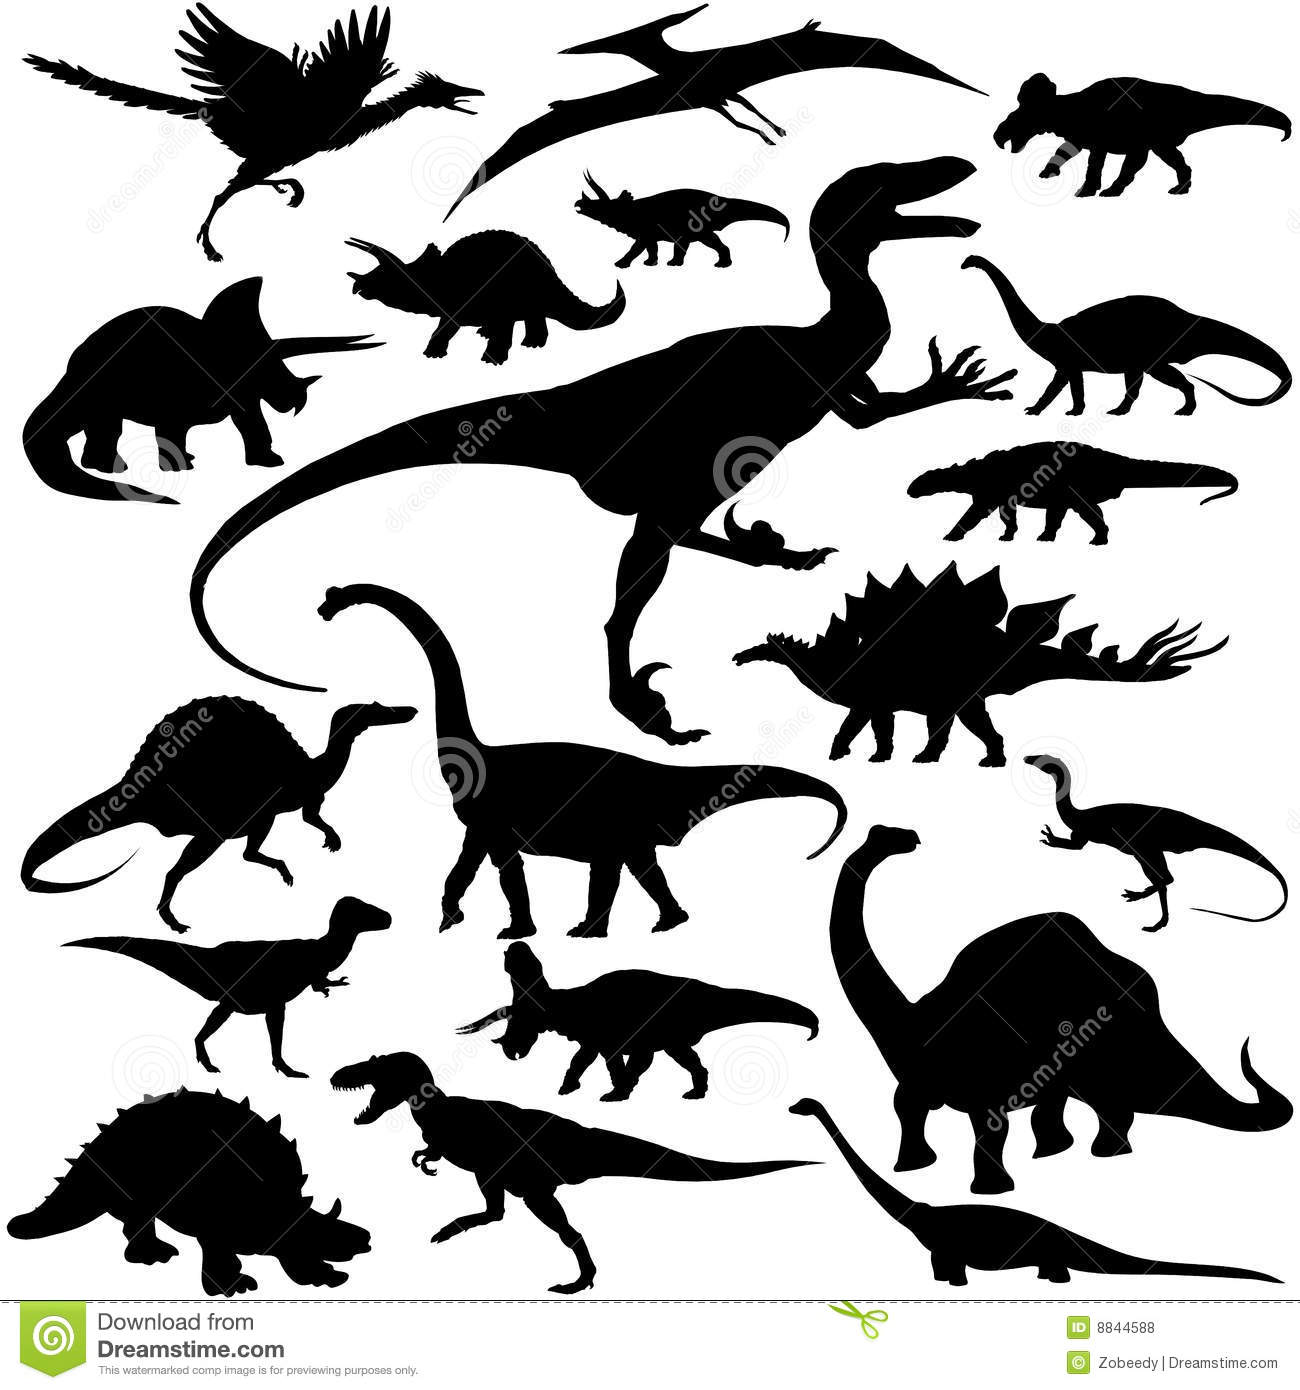 Detailed Vectoral Dinosaur Silhouettes